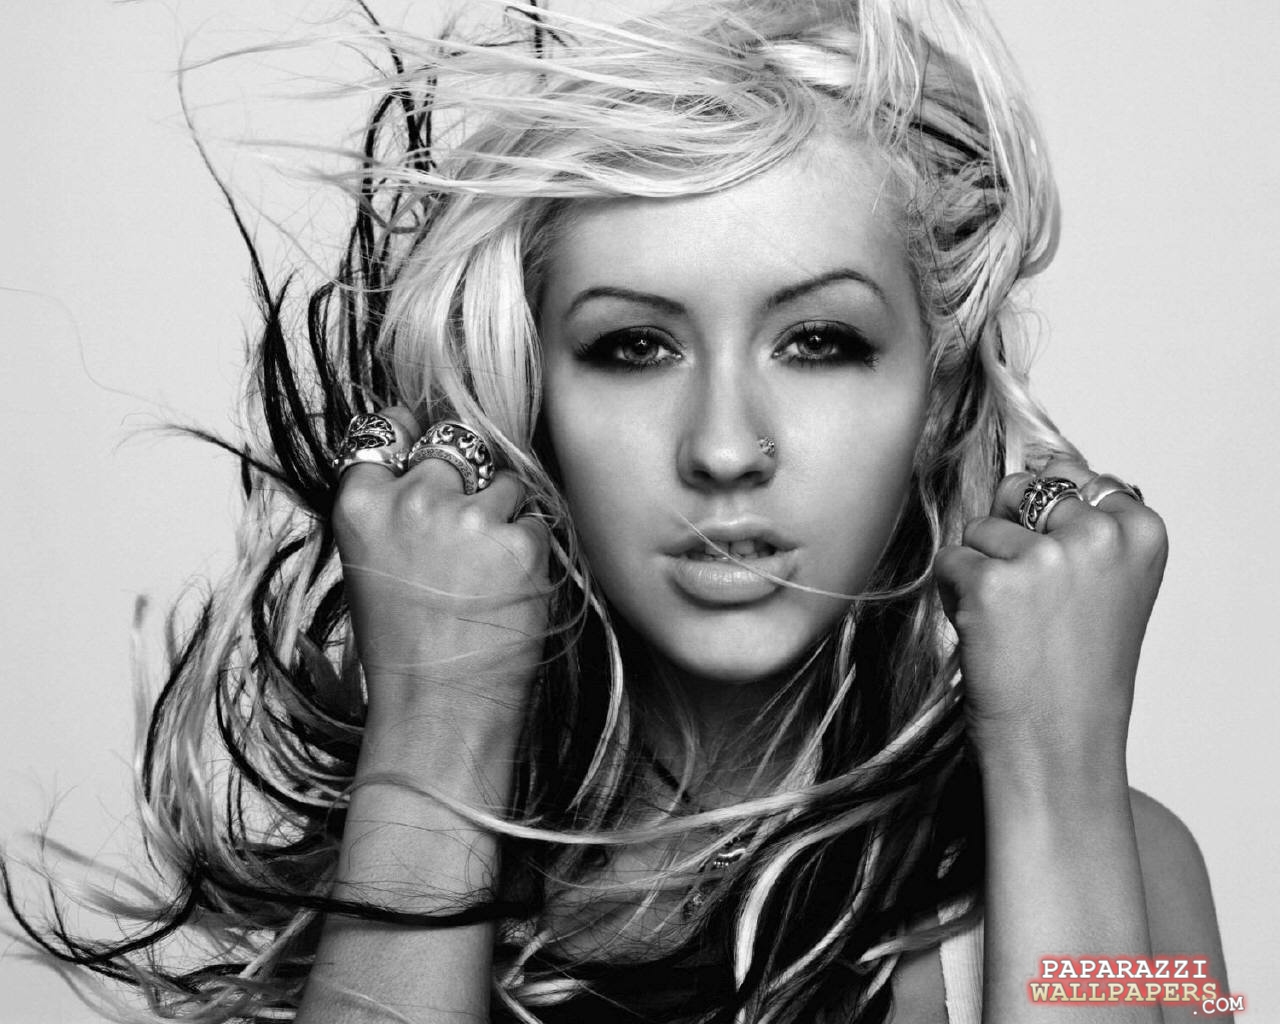 Home / Christina Aguilera / christina aguilera wallpapers 066